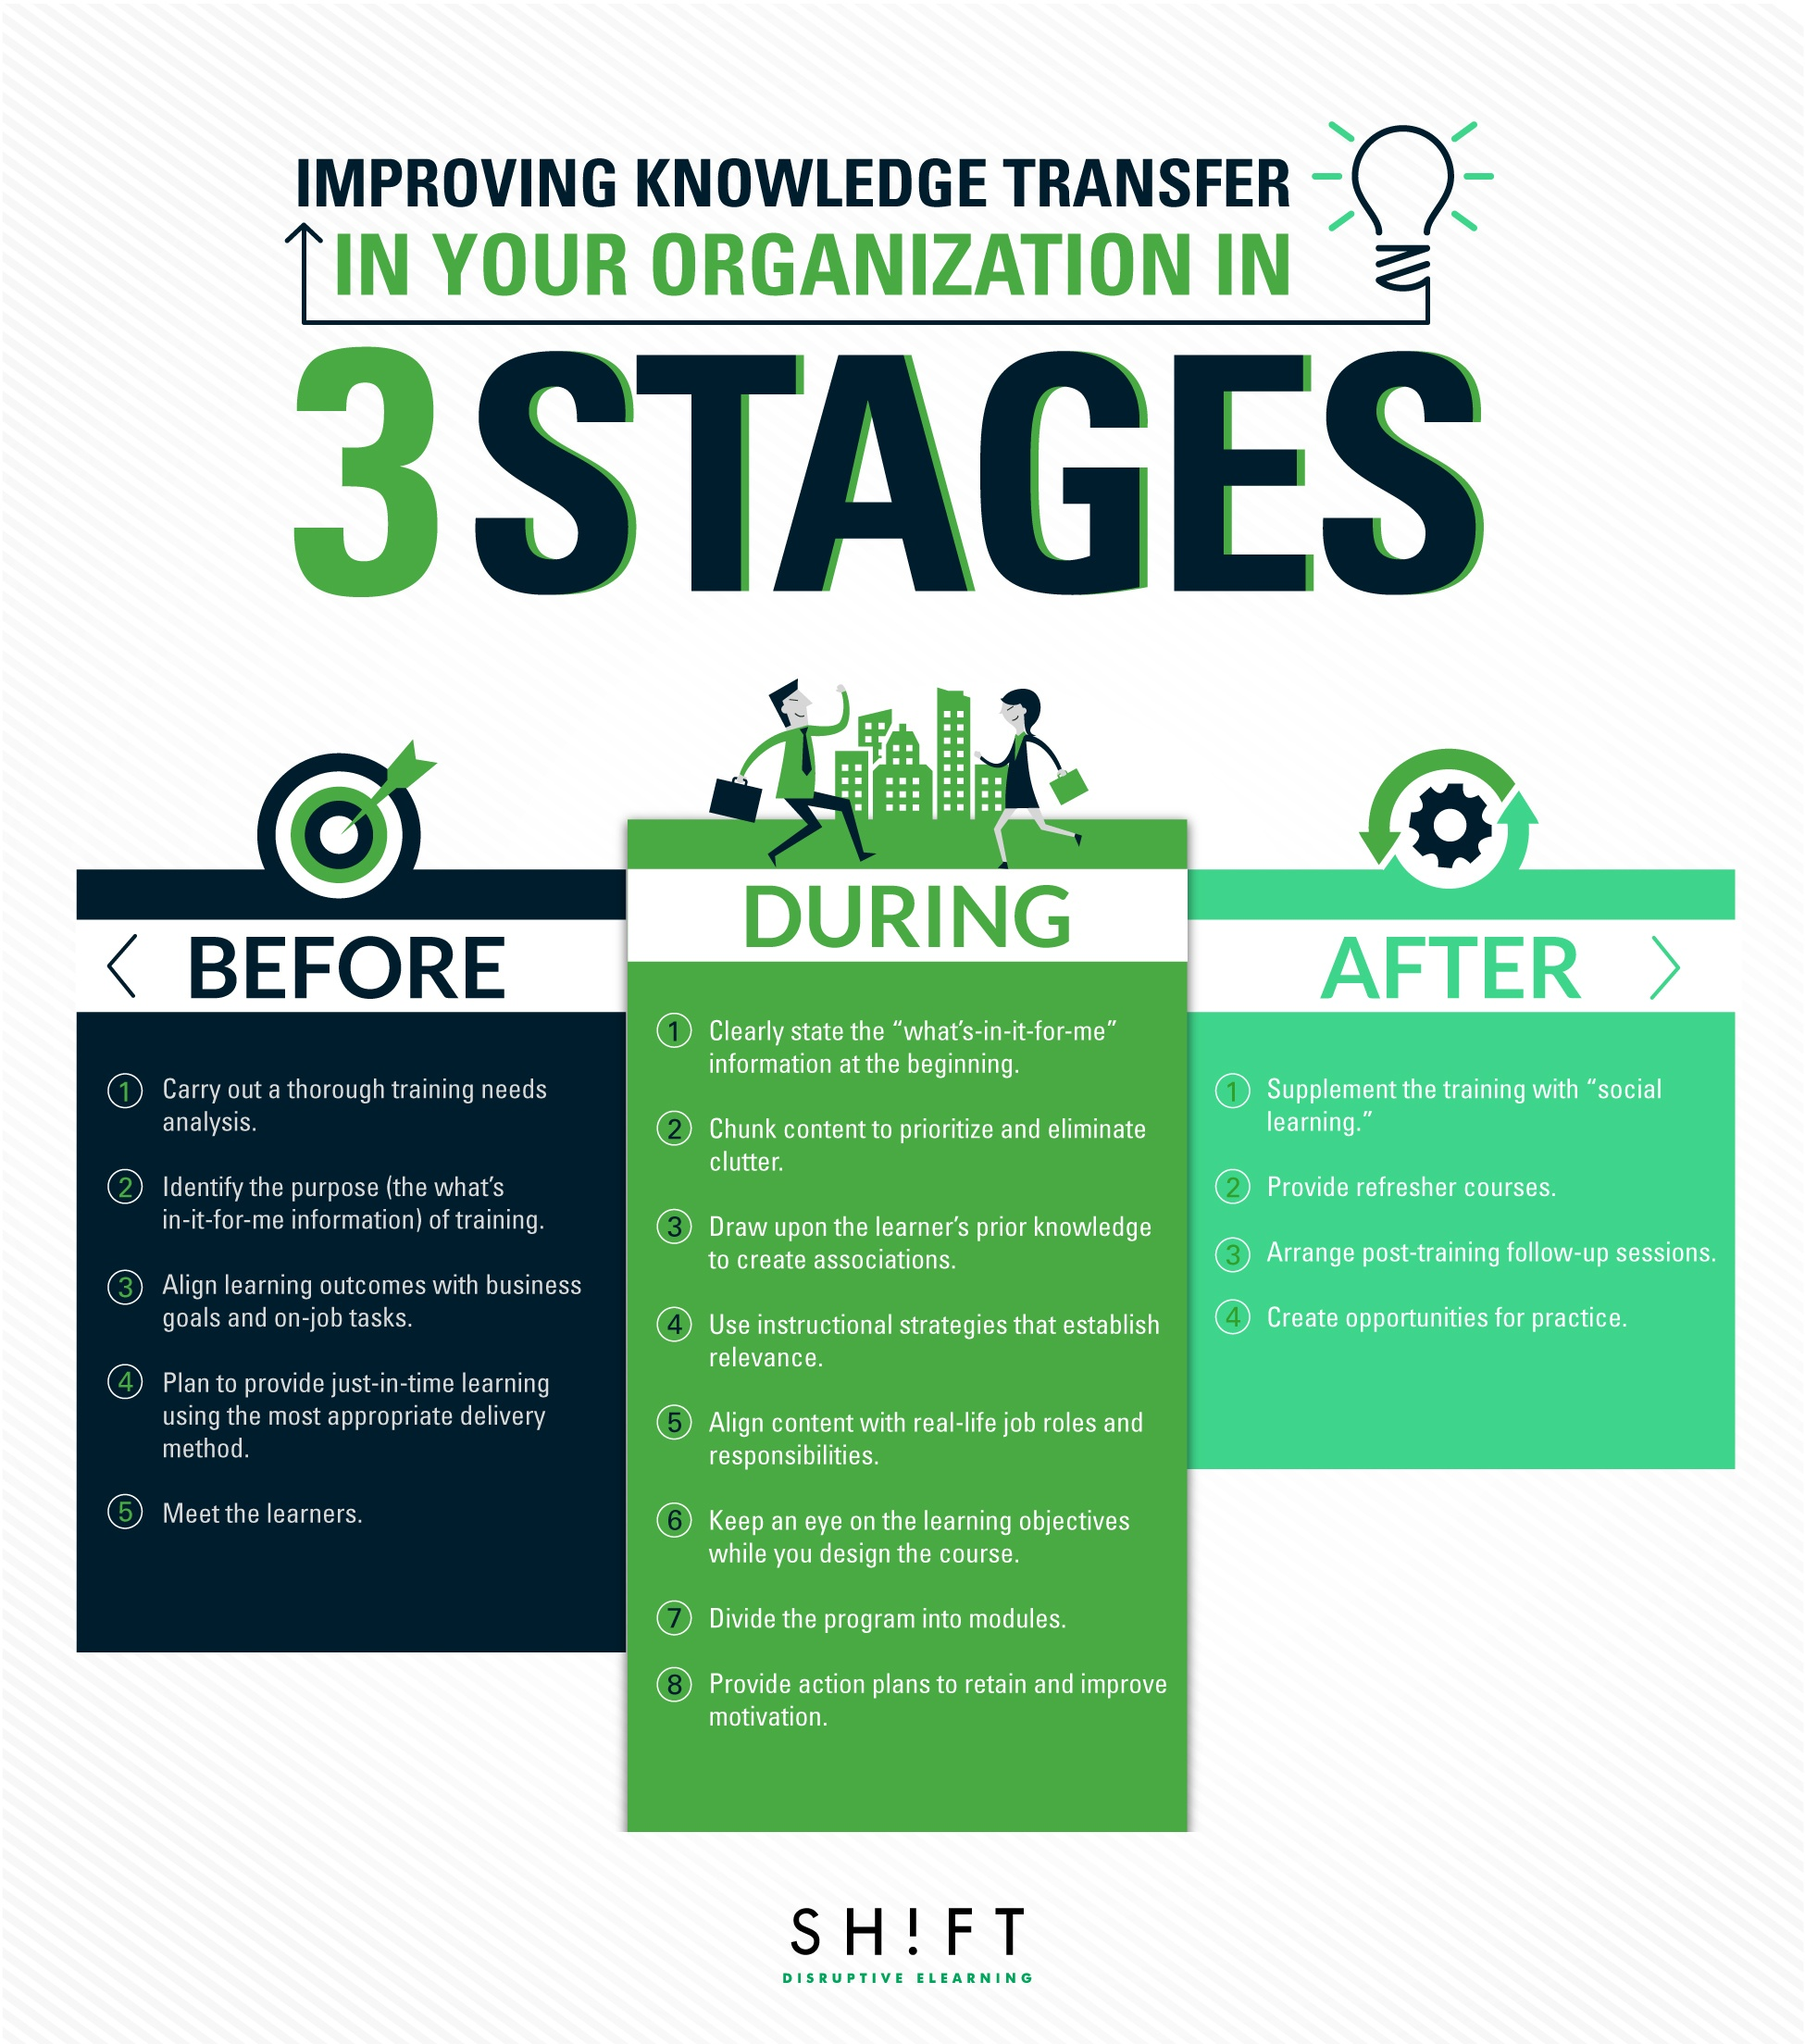 Before, During, and After Training: Improving Knowledge Transfer in